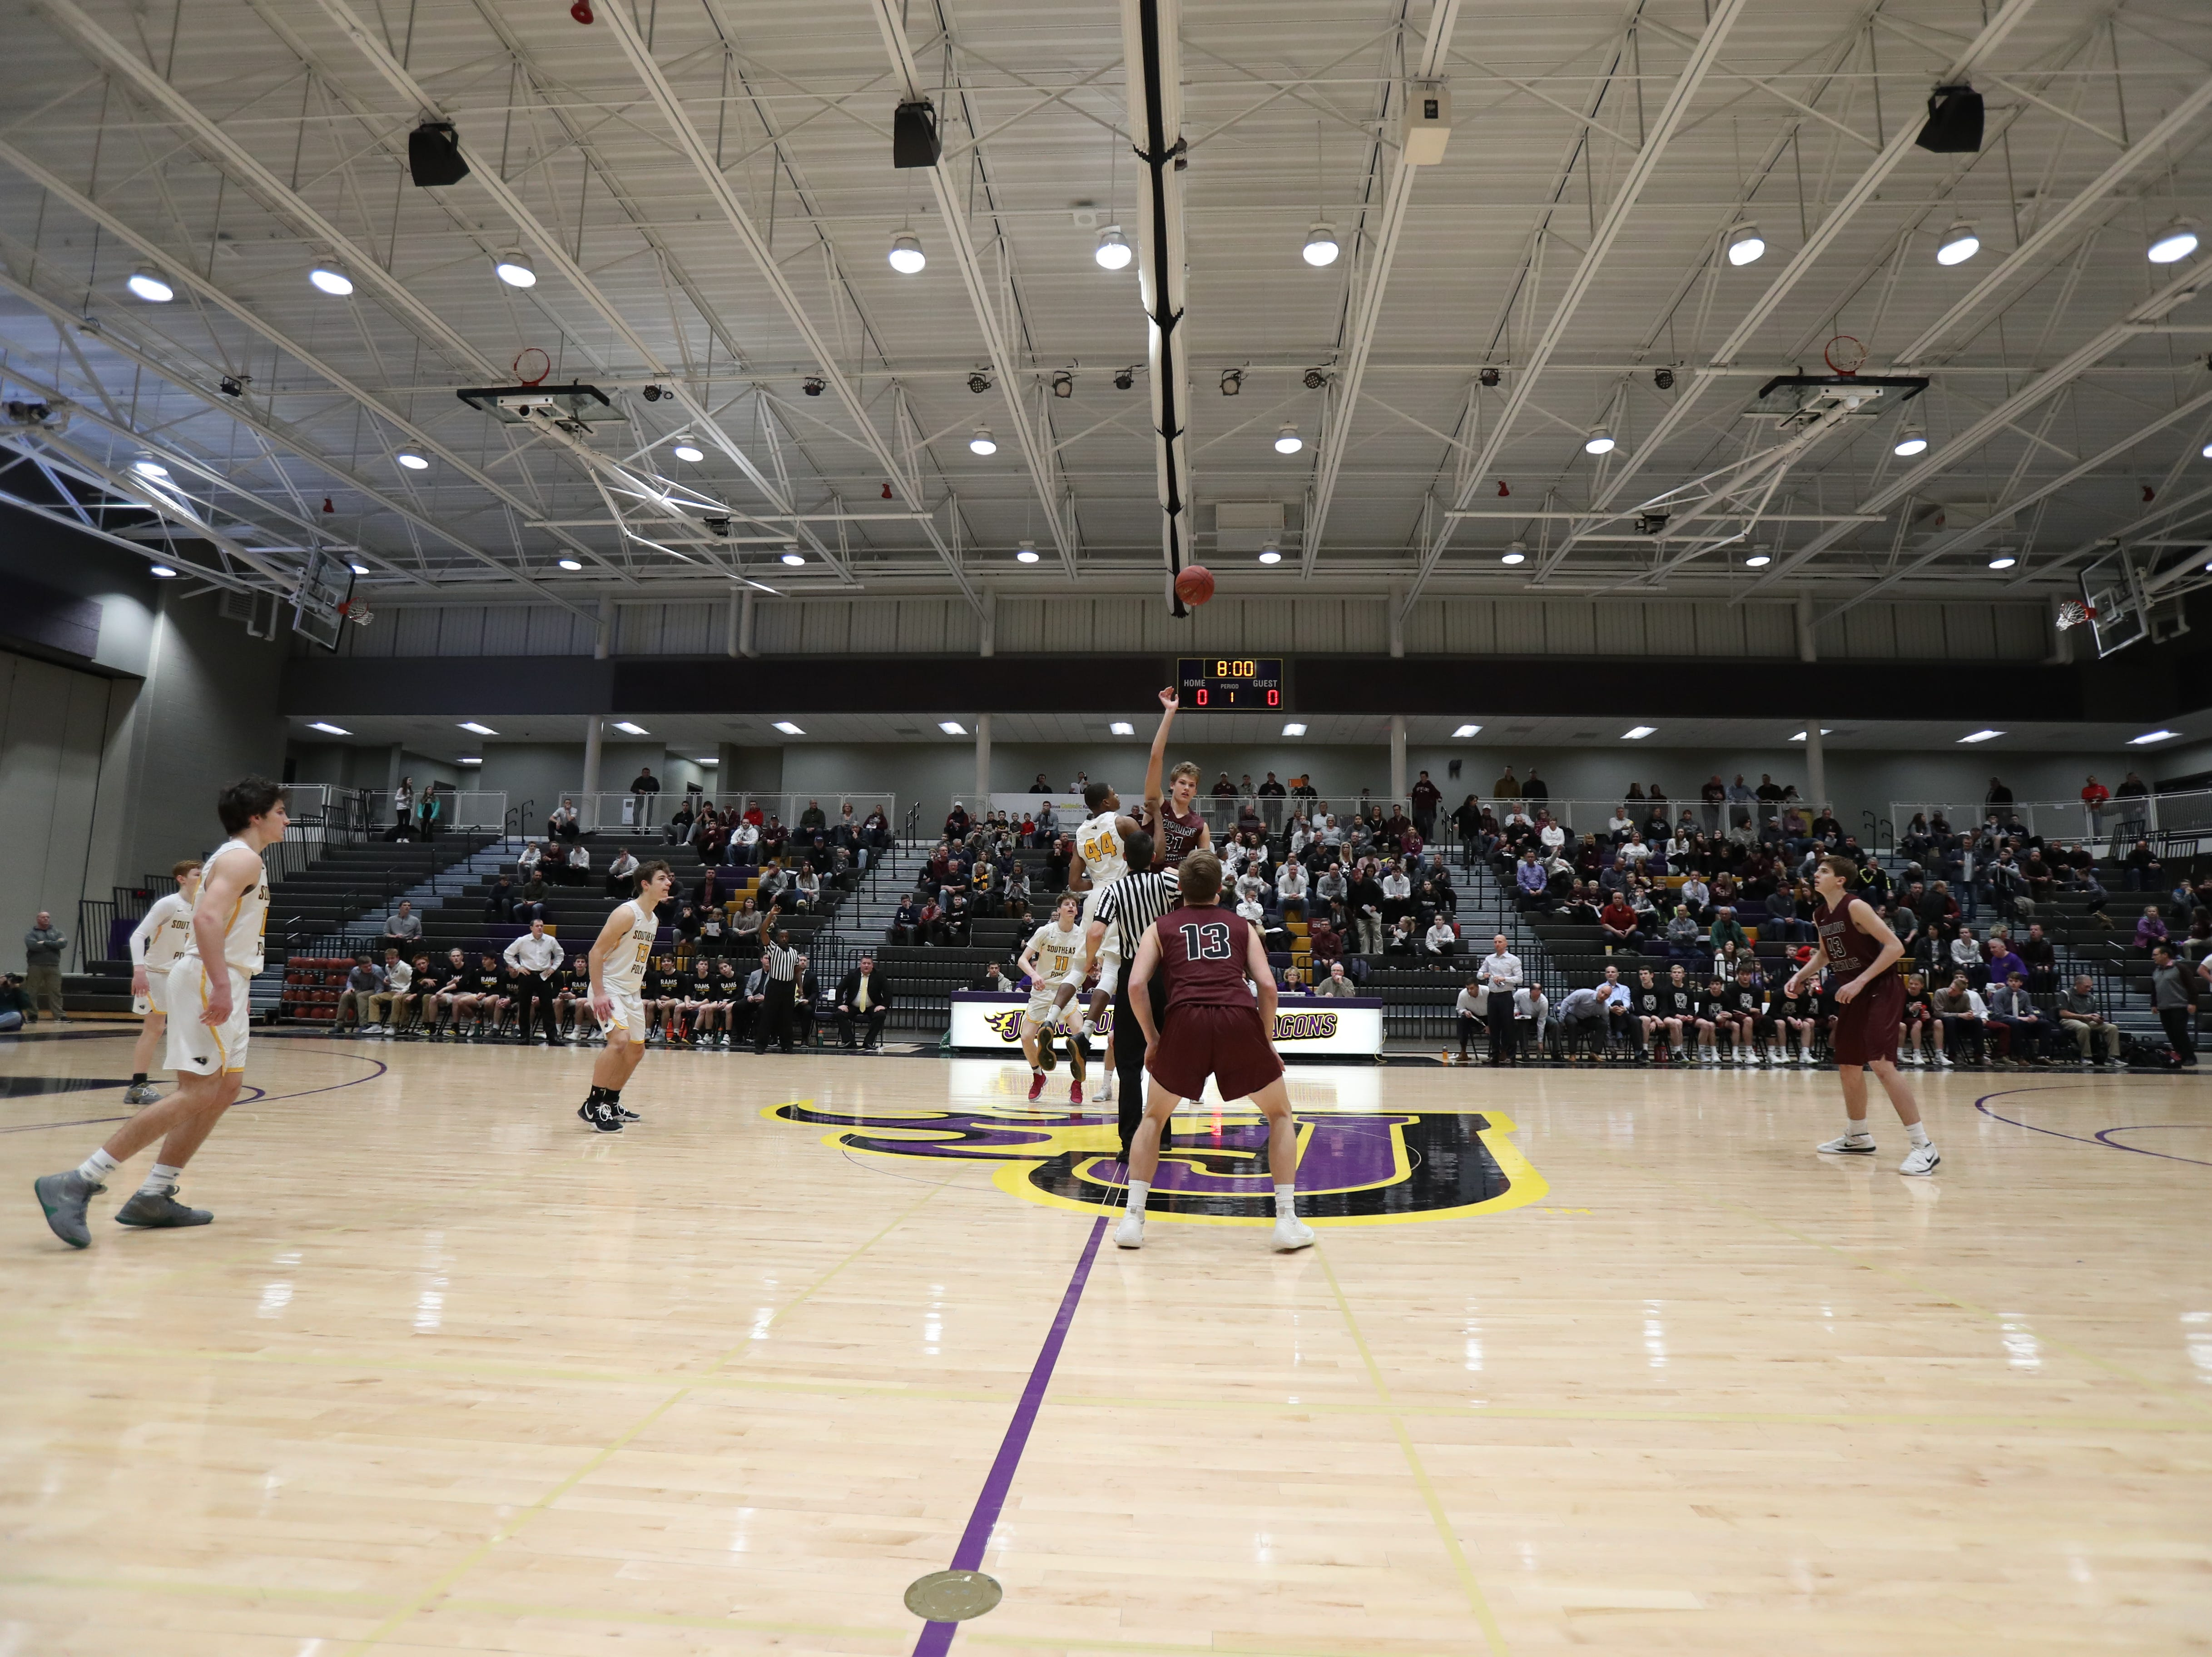 Dowling Catholic's Ryan Riggs (21) wins the jump to start the game against the Southeast Polk at Johnston High School in Johnston, Iowa, on Tuesday, Feb. 26, 2019. Dowling won the game 44-40 to advance to state.